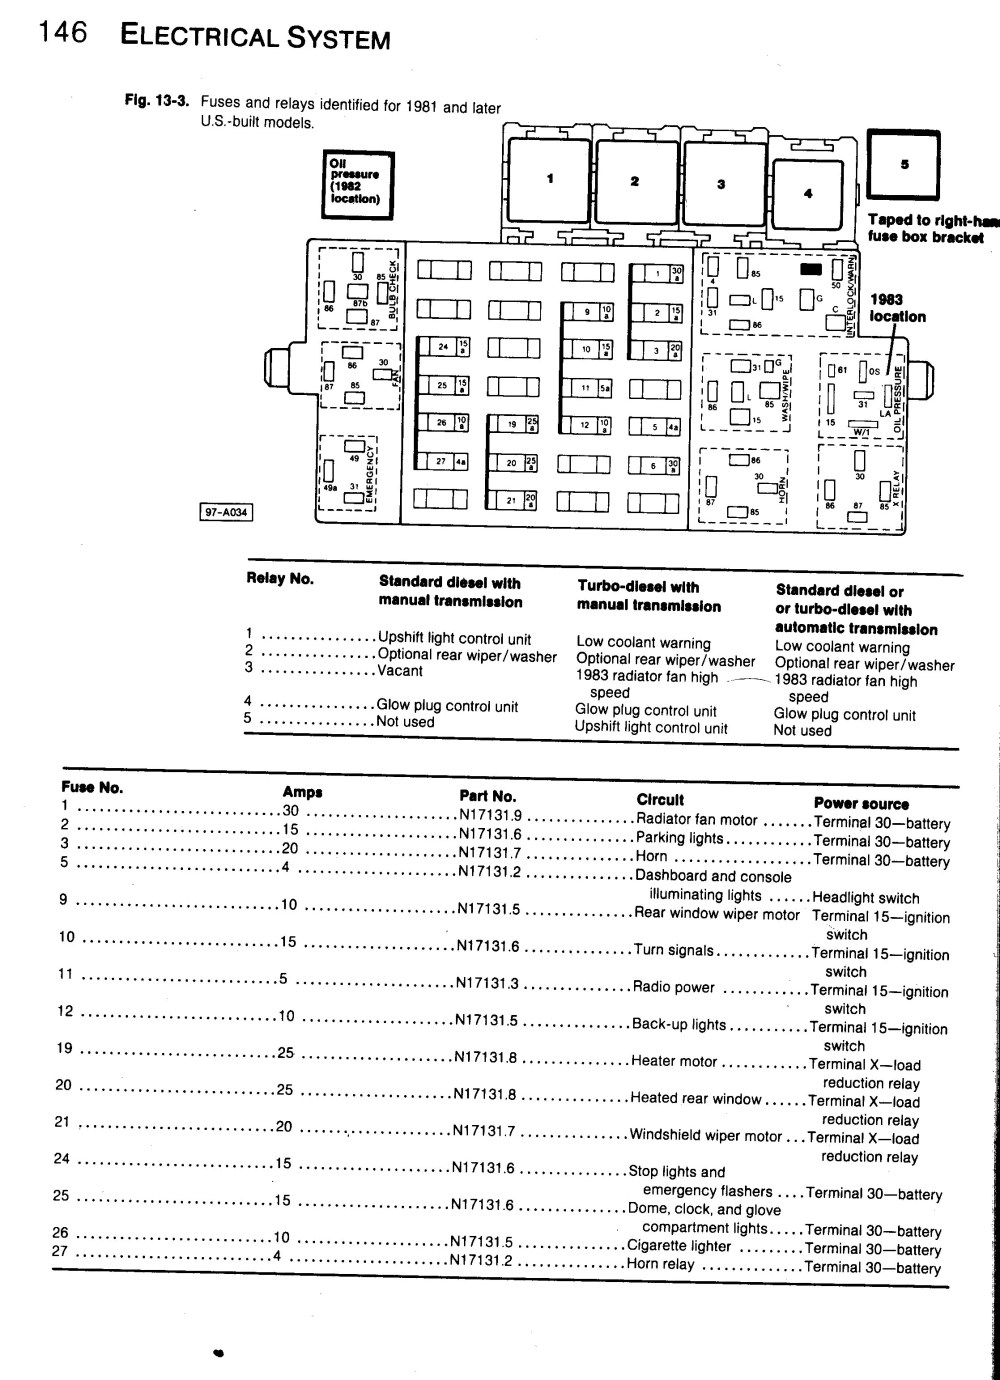 medium resolution of 2005 jetta fuse box schema wiring diagram online rh 12 2 travelmate nz de 2014 jetta tdi fuse box diagram 2014 jetta tdi fuse box diagram